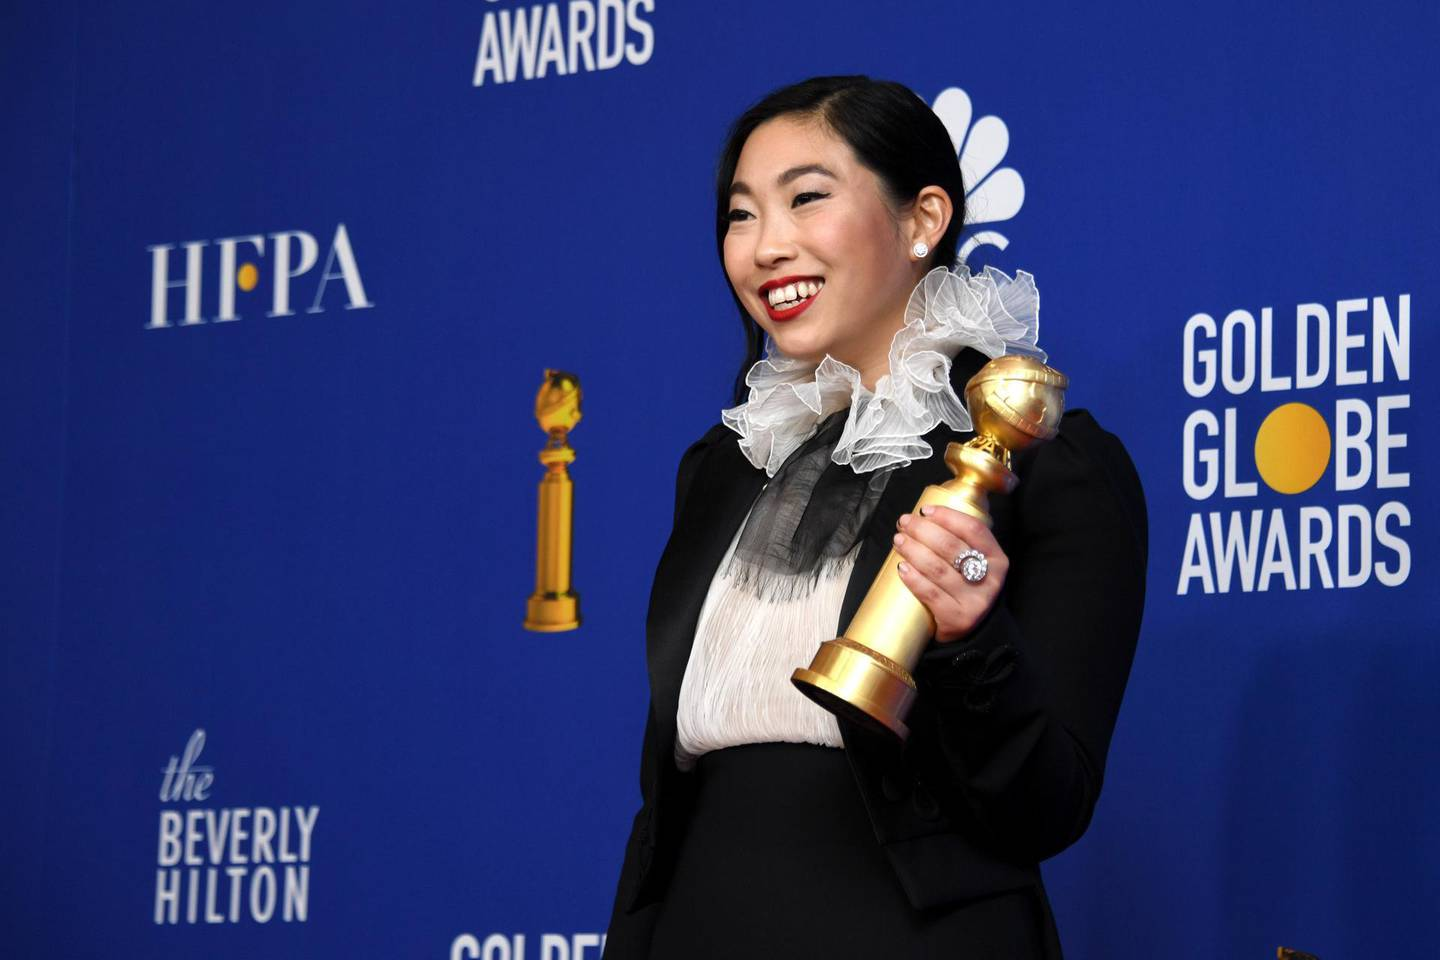 epa08106404 Awkwafina holds the award for Best Performance by an Actress in a Motion Picture - Musical or Comedy for 'The Farewell' in the press room during the 77th annual Golden Globe Awards ceremony at the Beverly Hilton Hotel, in Beverly Hills, California, USA, 05 January 2020.  EPA/CHRISTIAN MONTERROSA